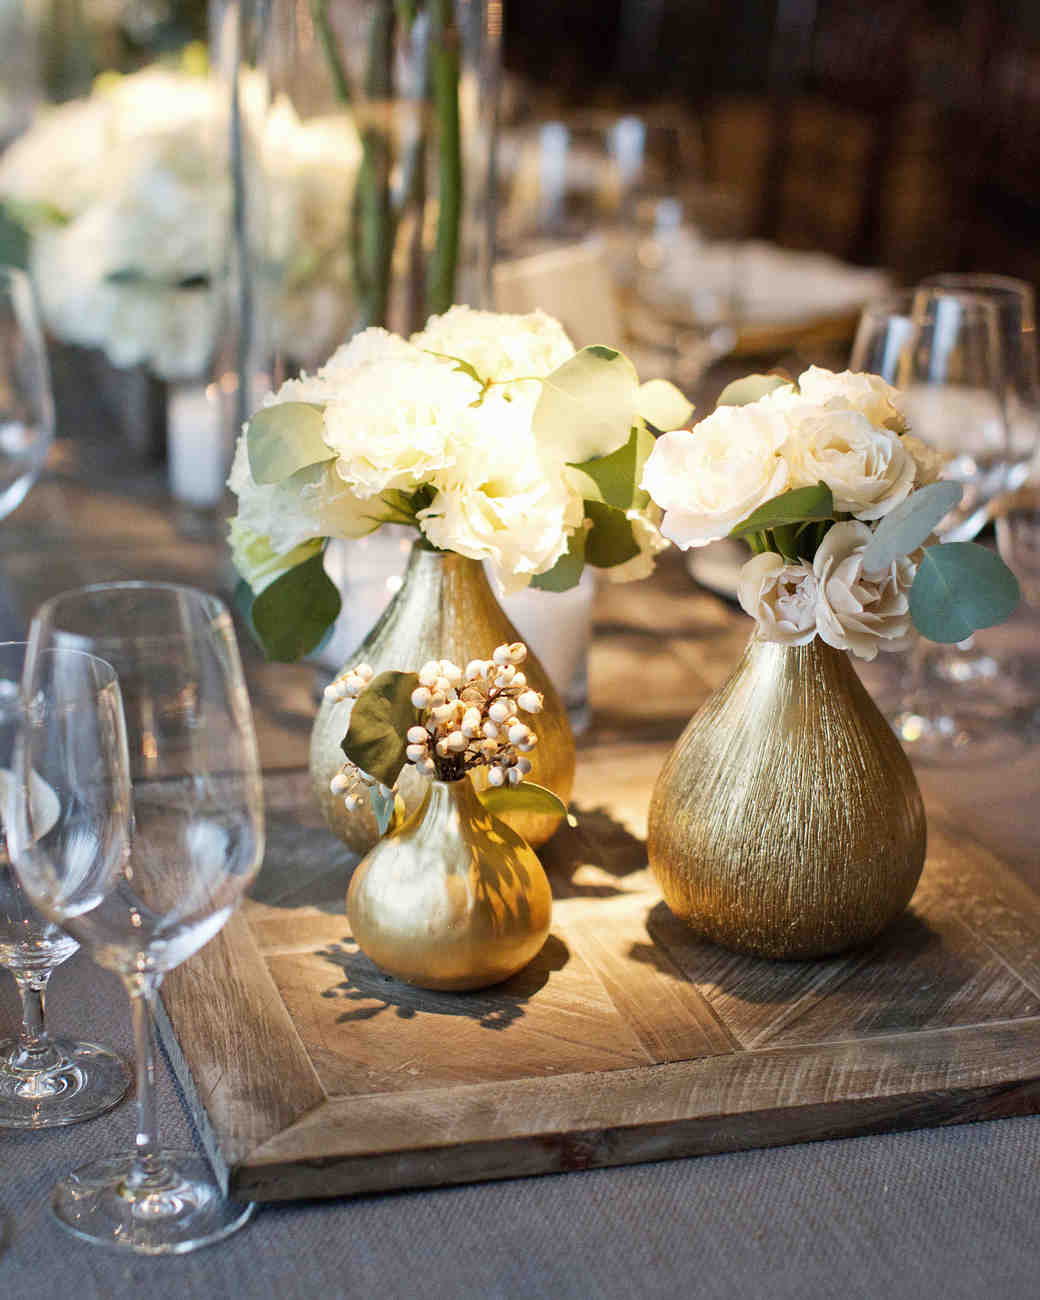 40 of our favorite floral wedding centerpieces martha stewart weddings glamorous wedding centerpieces junglespirit Image collections